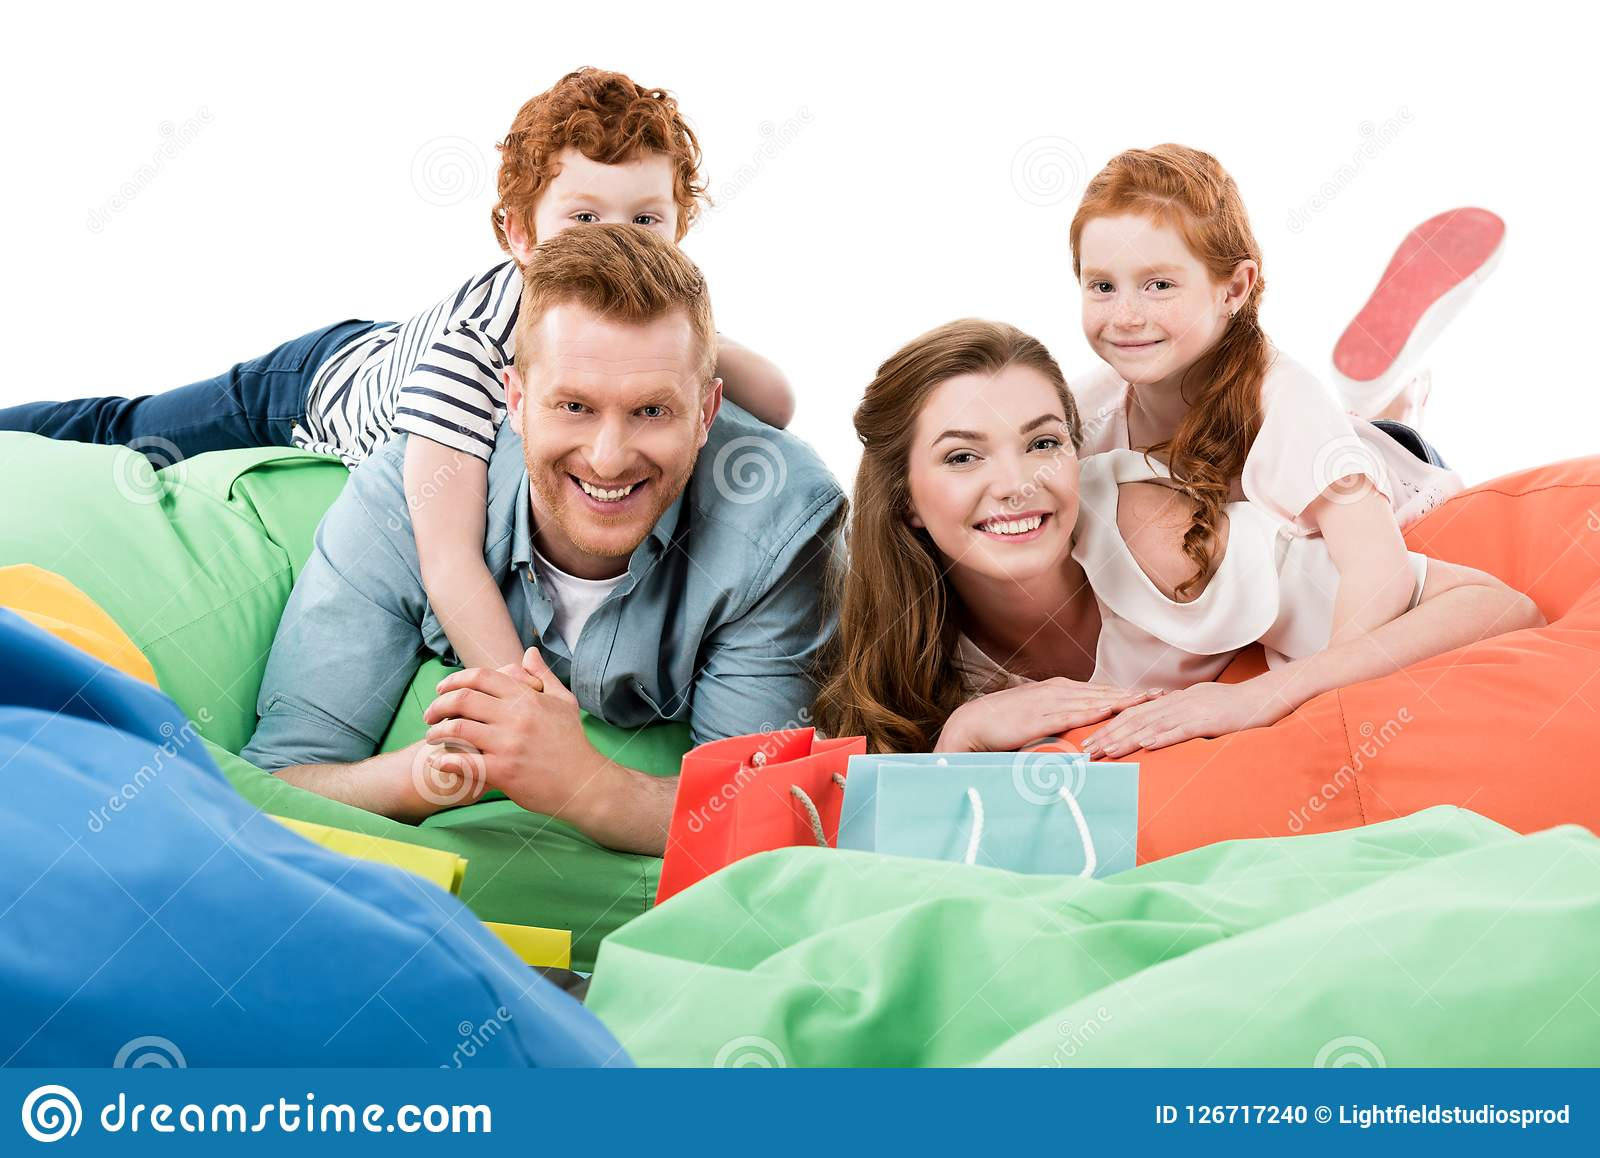 happy family with two kids lying on bean bag chairs and smiling at camera after shopping